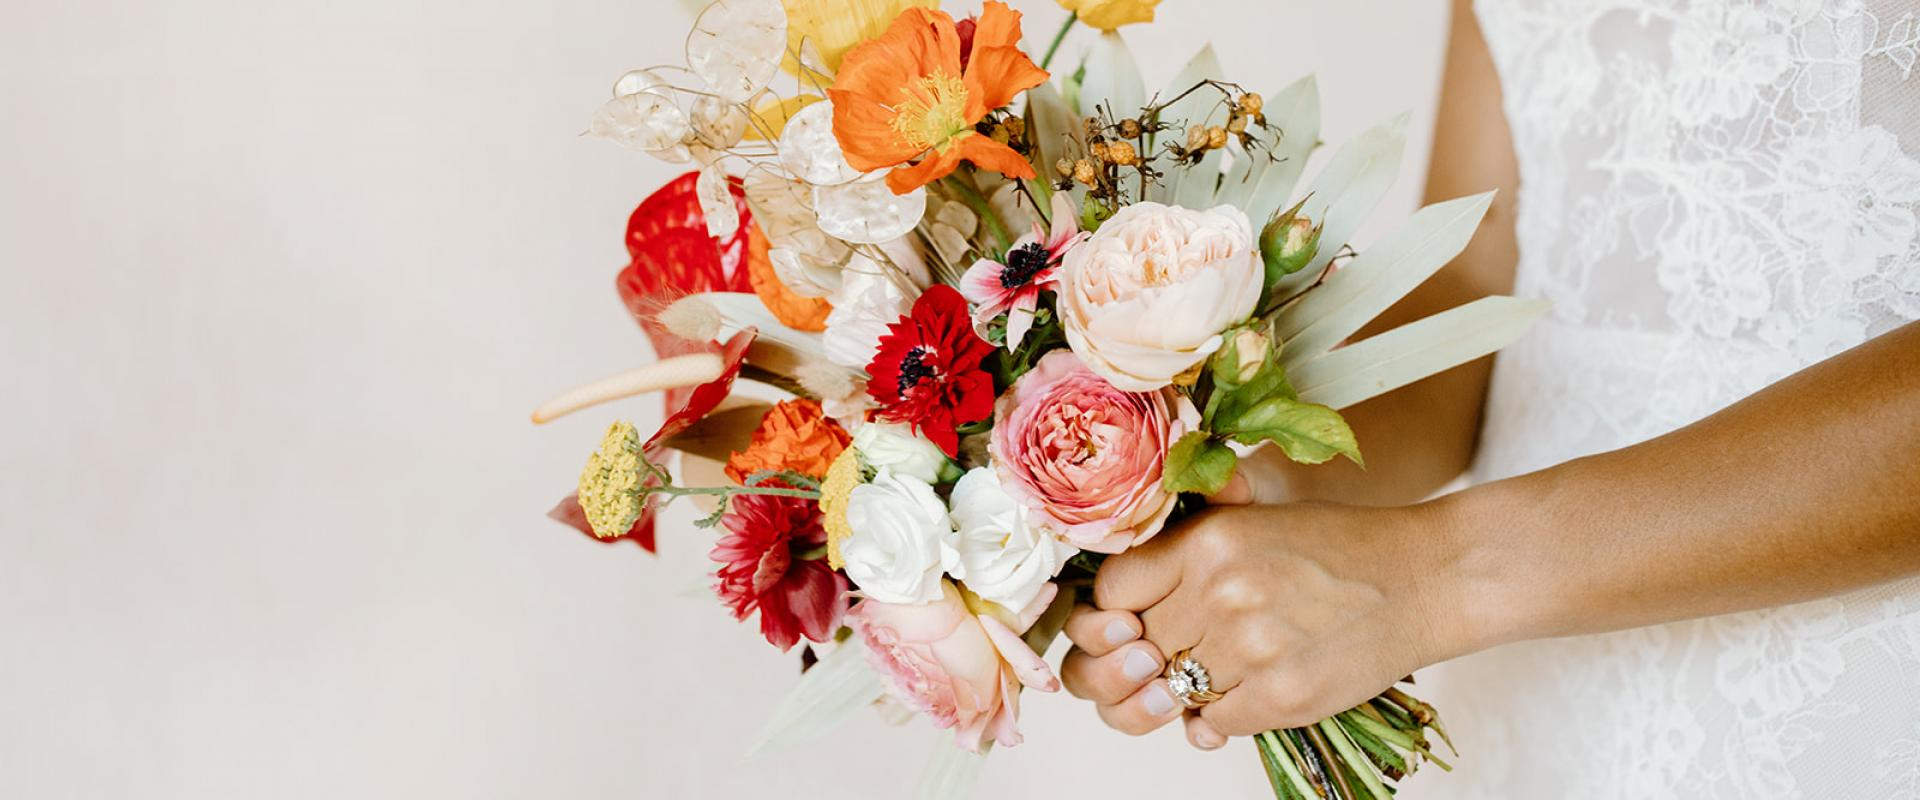 choose natural hand tied wedding bouquets for the wedding 7 - Choose Natural Hand Tied Wedding Bouquets for the Wedding